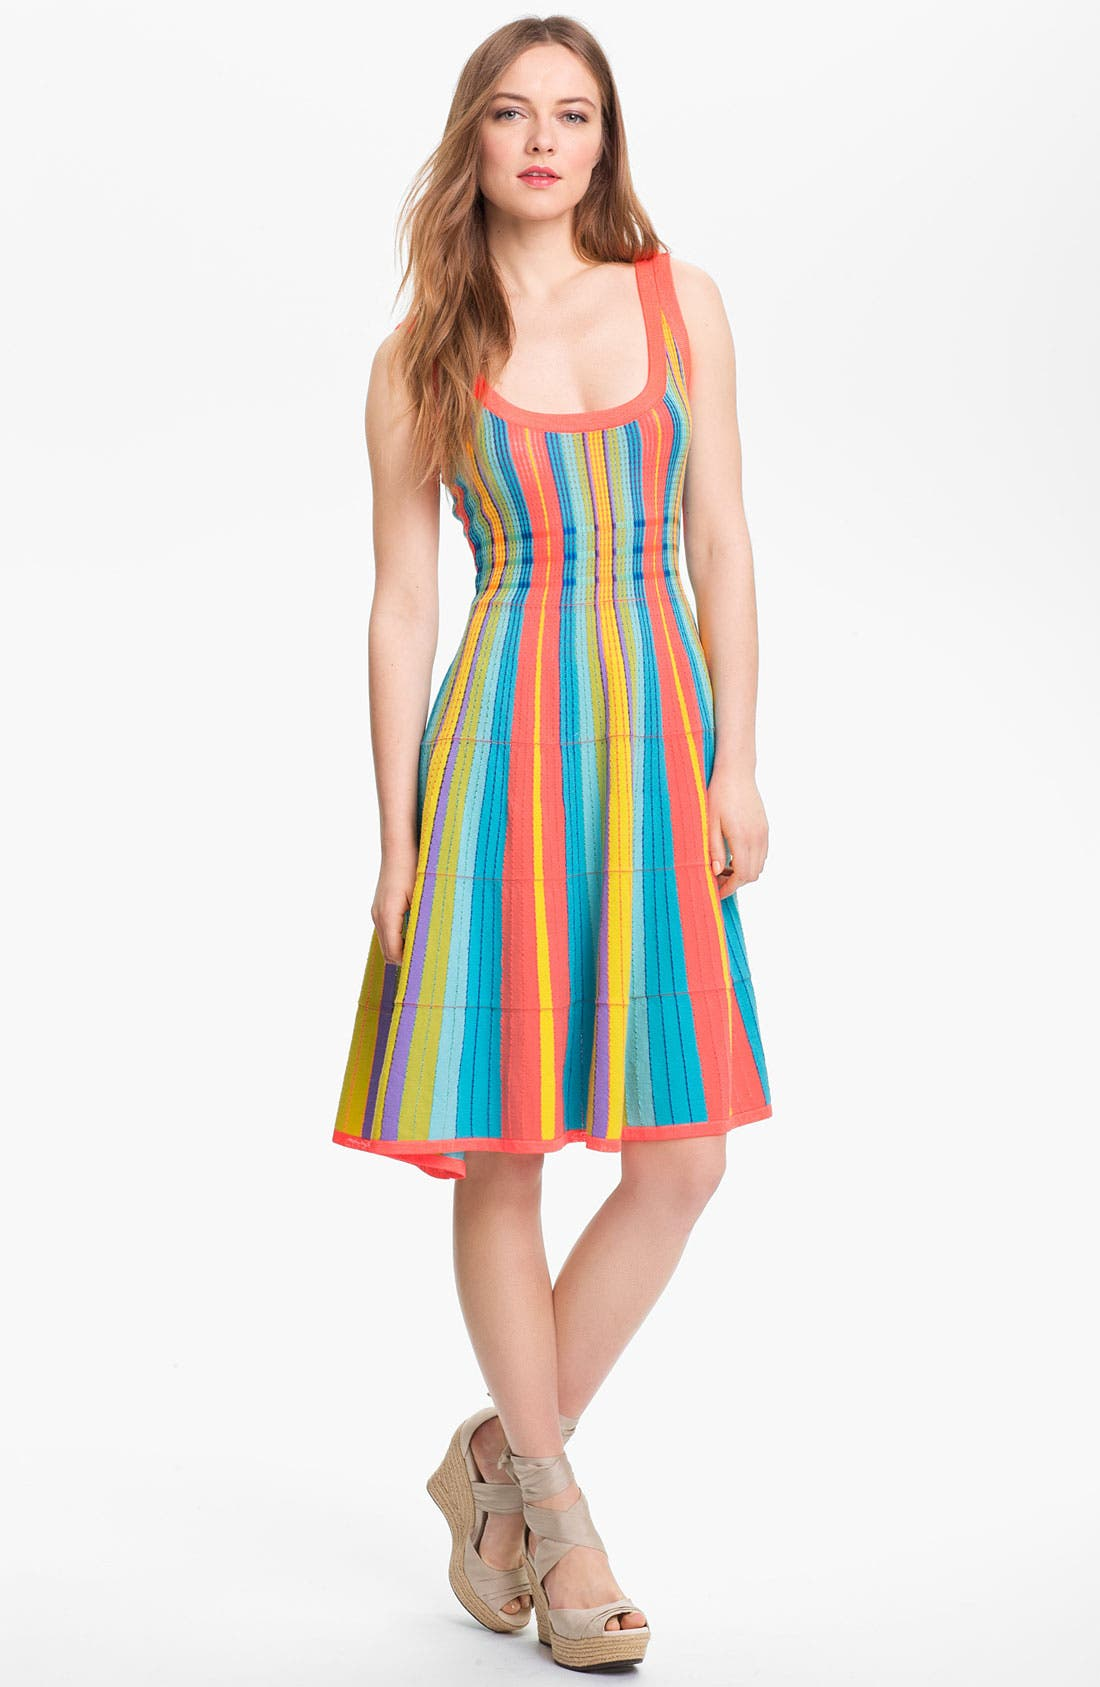 Alternate Image 1 Selected - kate spade new york 'ariele' cotton blend a-line dress